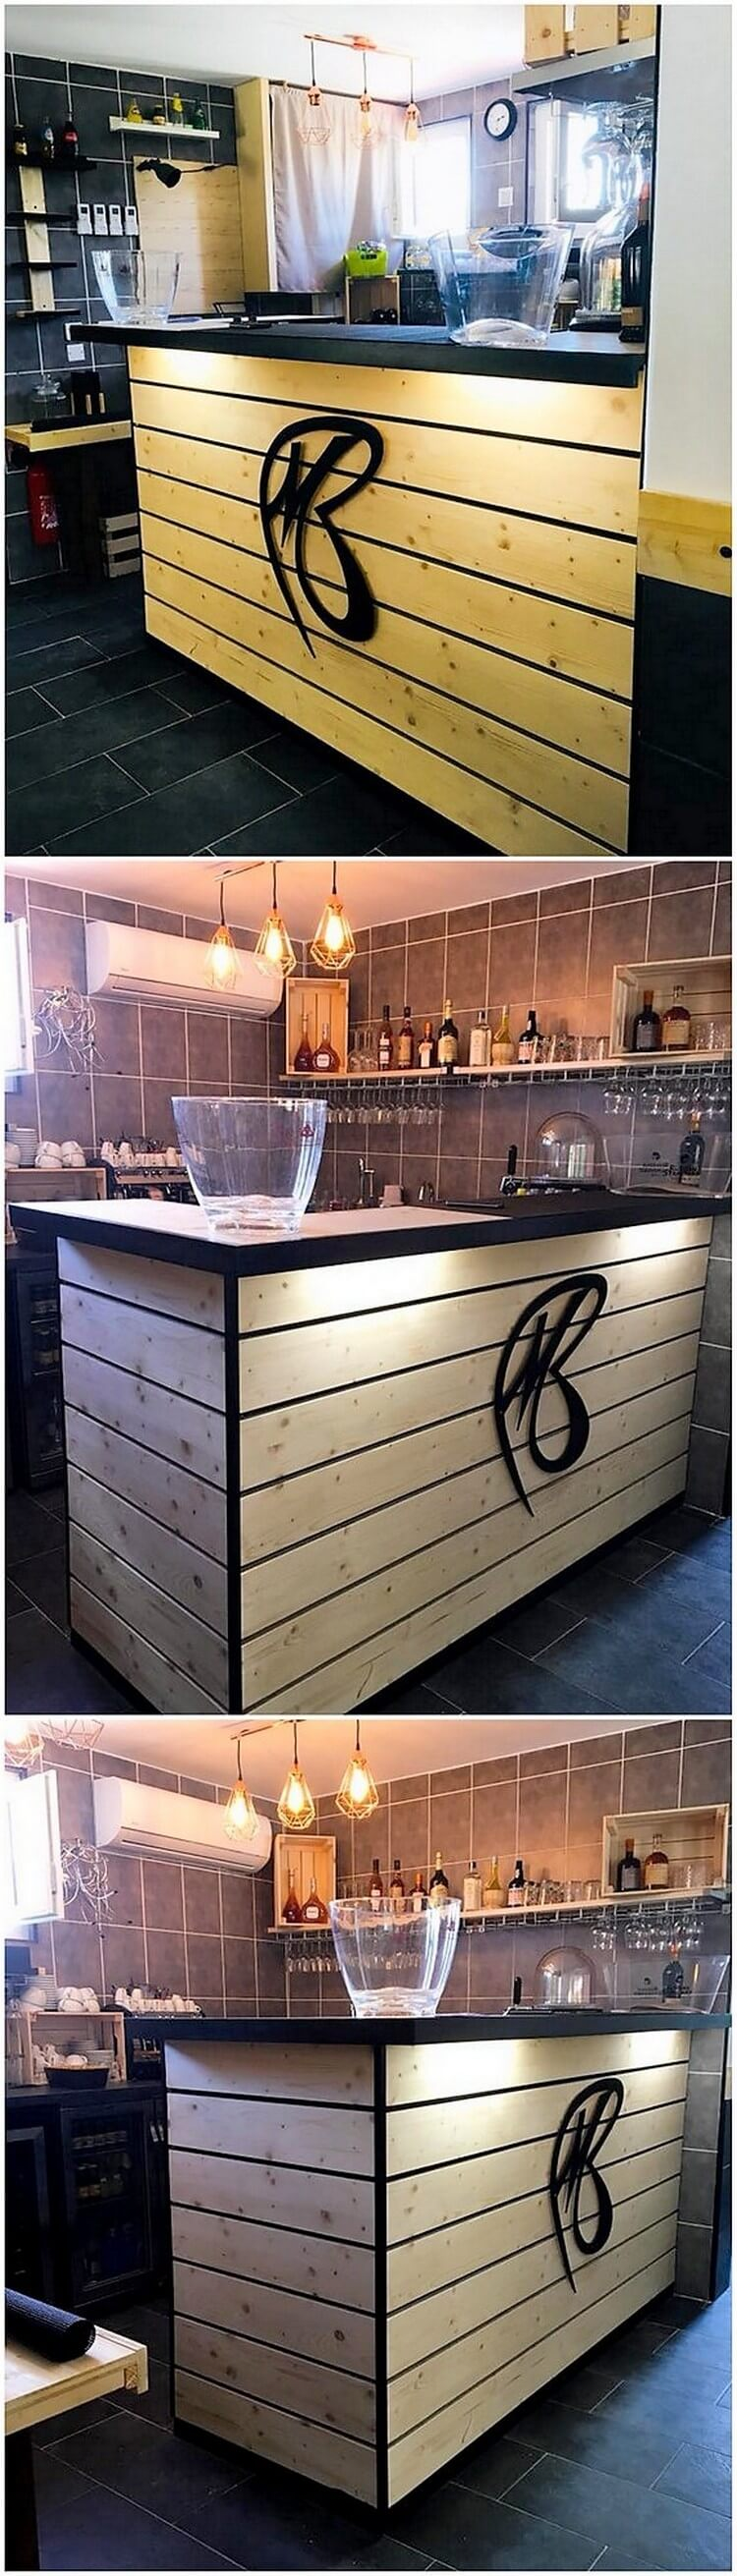 Pallet Kitchen Counter